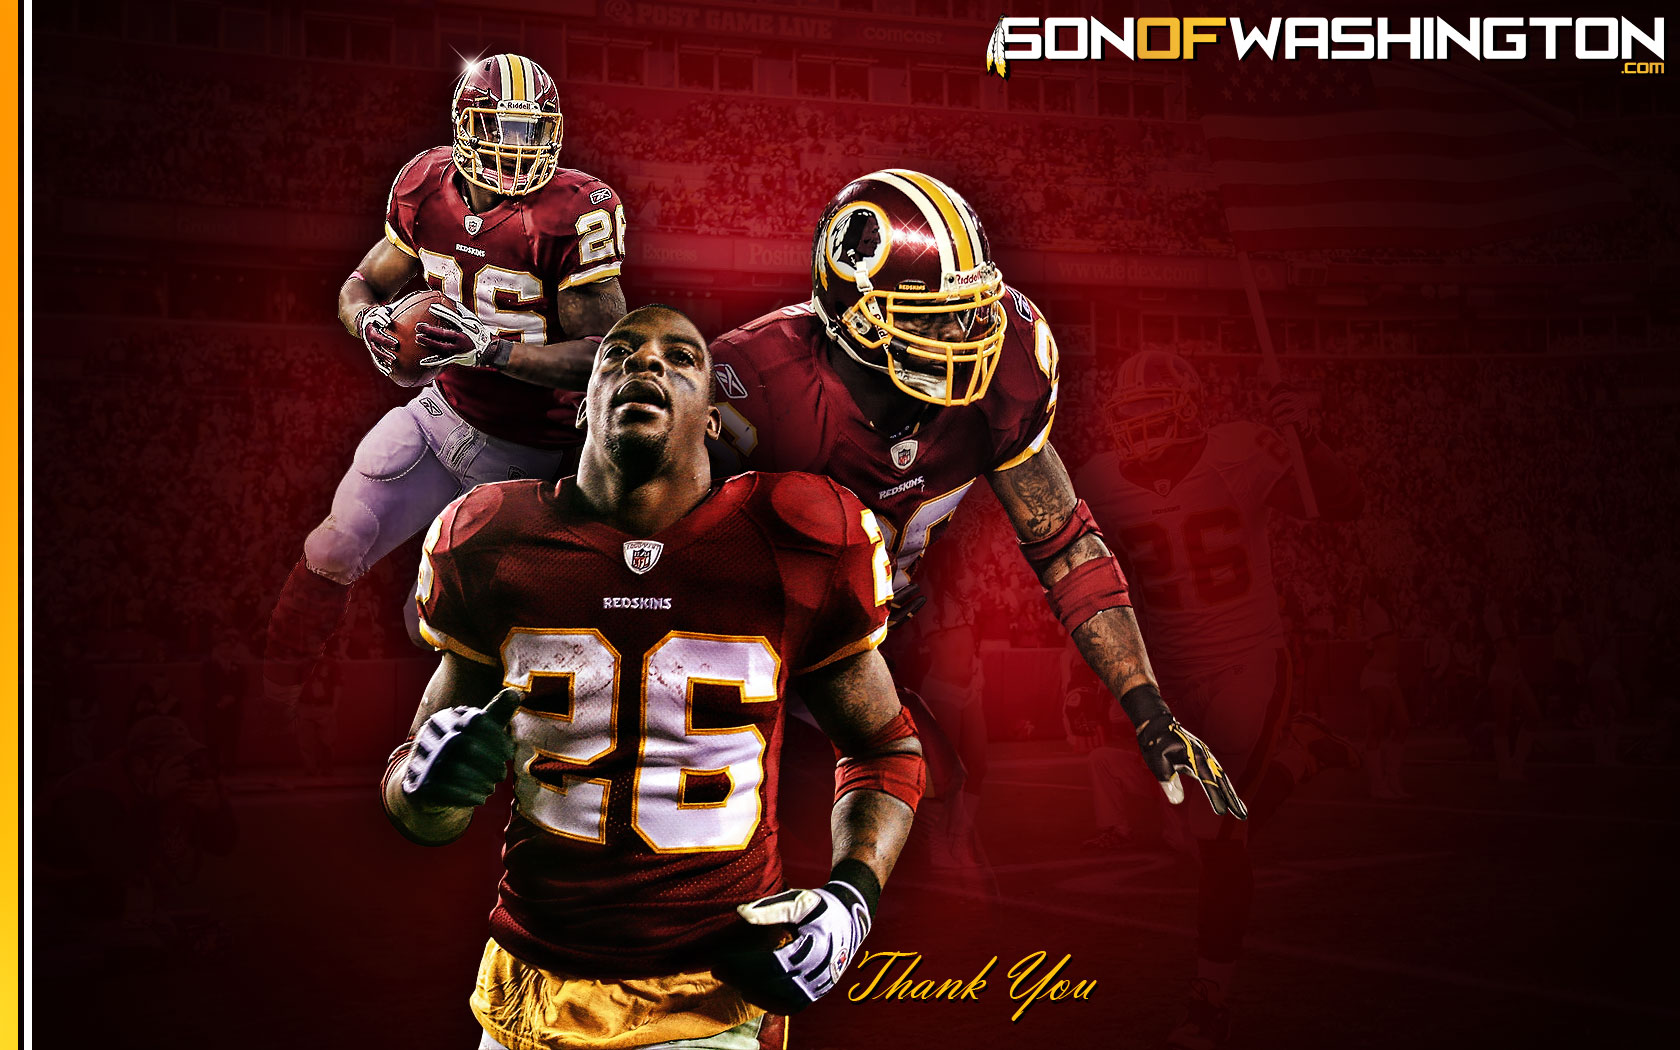 New Washington Redskins wallpaper background Washington Redskins 1680x1050